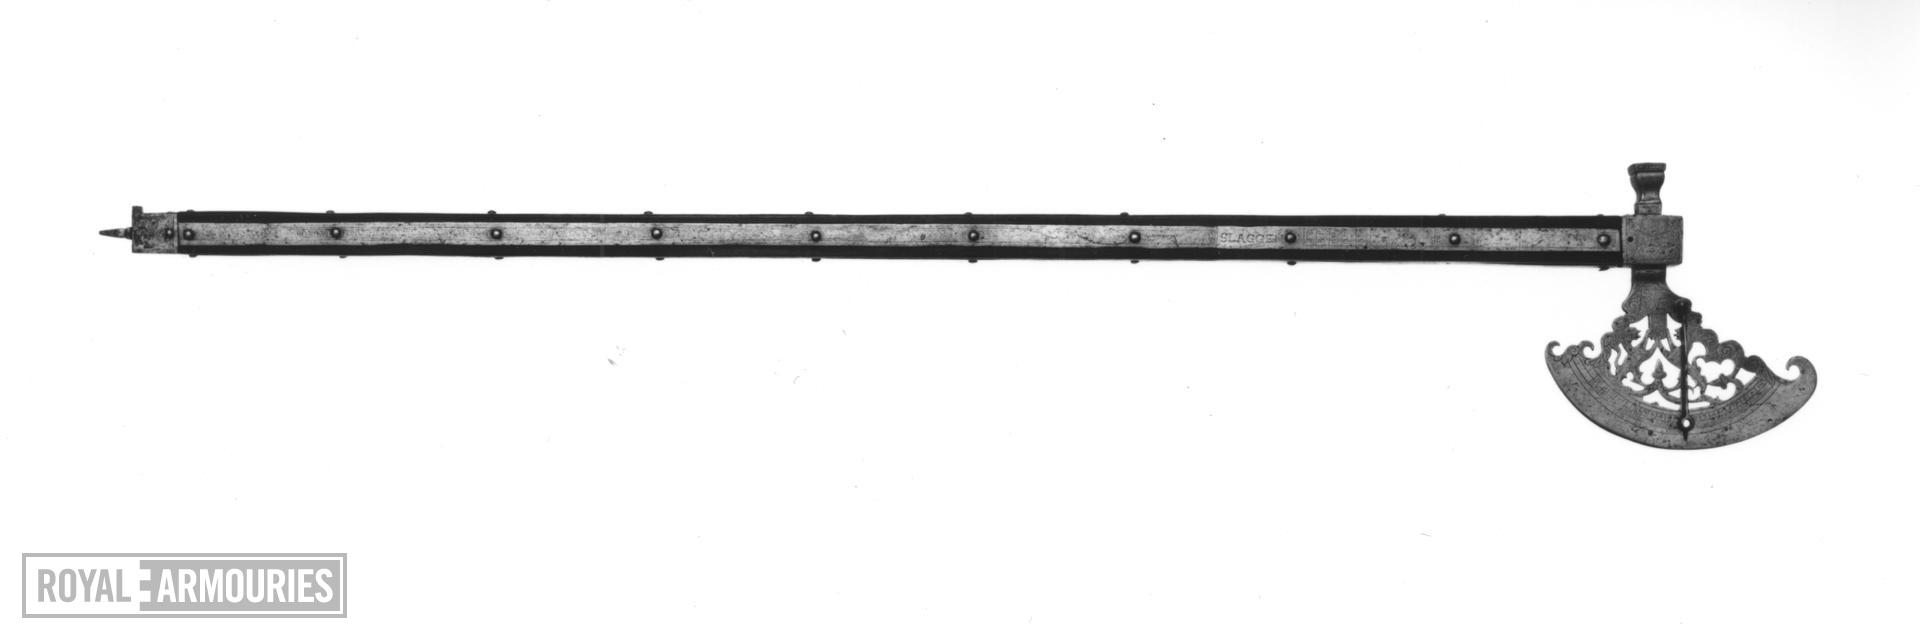 Gunner's quadrant Made for Julius, Duke of Brunswick and Luneburg